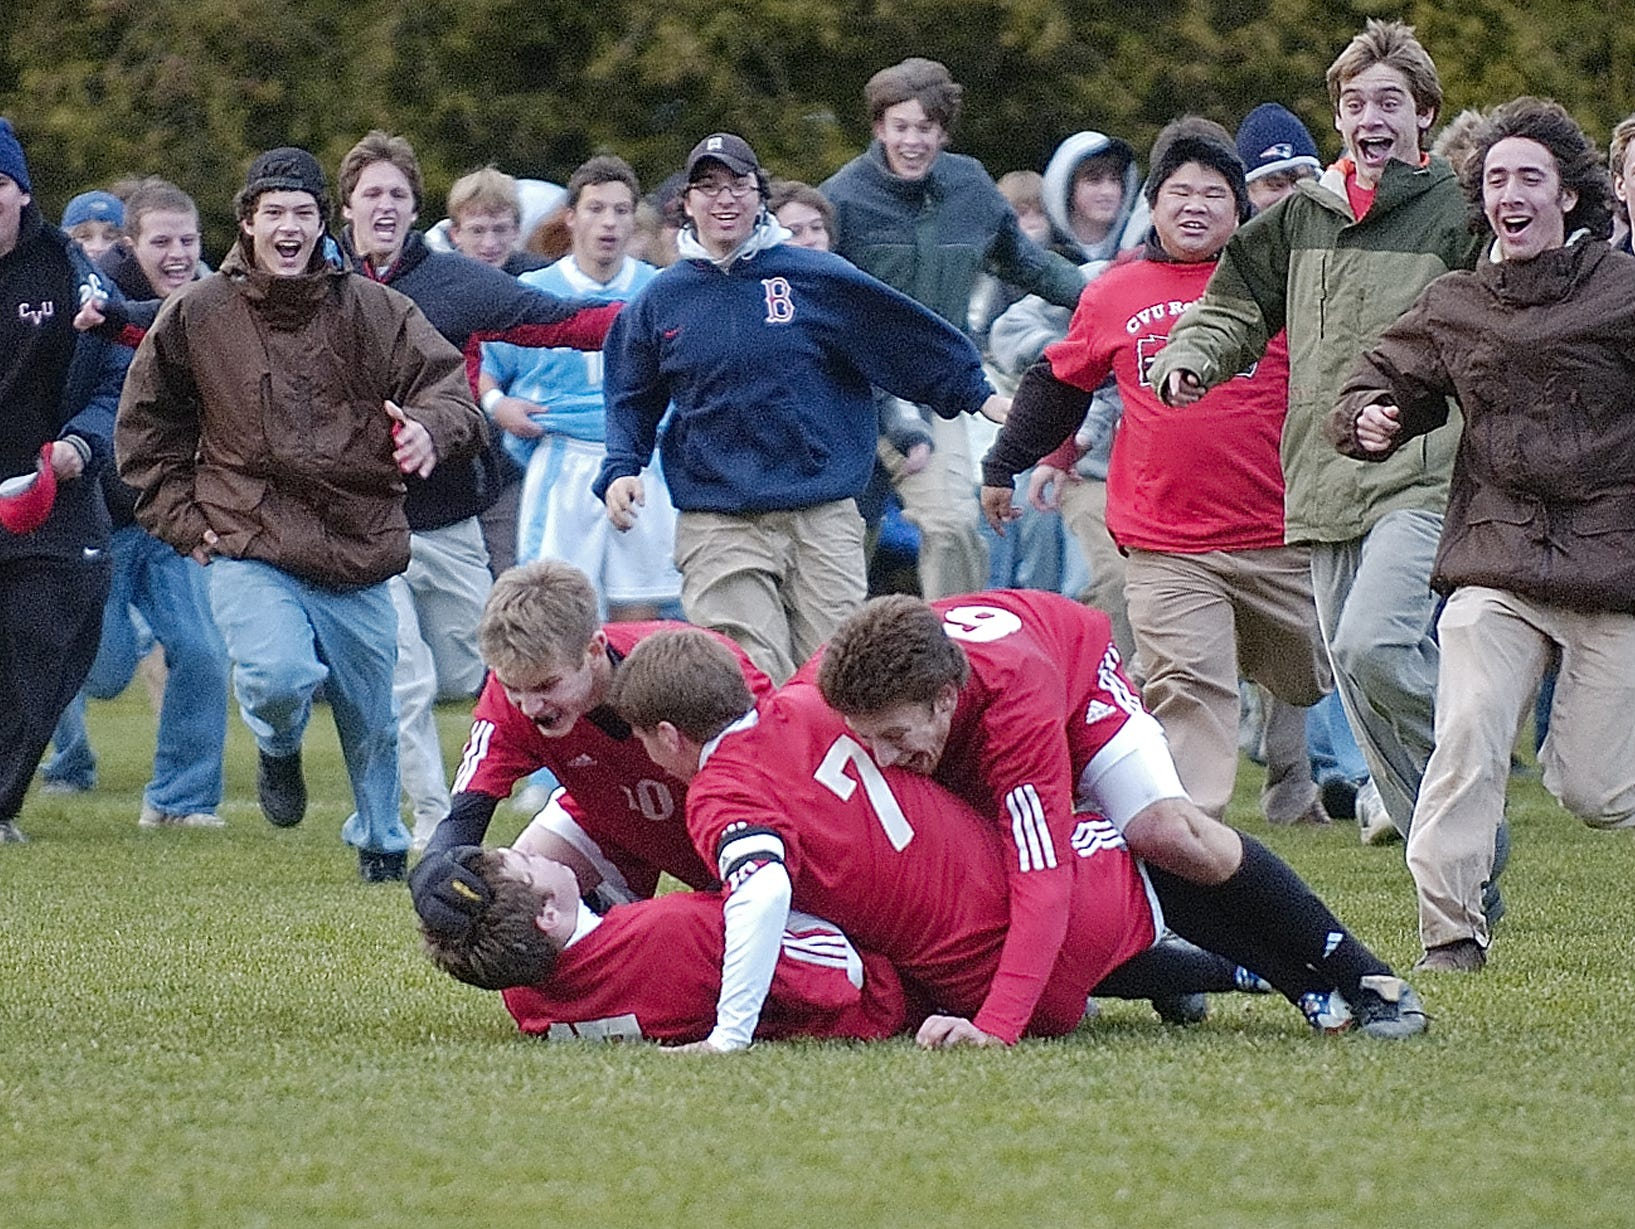 CVU's Tyler Macnee (bottom left) is mobbed by teammates Micah Rose, Ethan Morrow and Ian Dudley after Macnee scored the winning goal in the 2006 Division I boys soccer final against South Burlington.